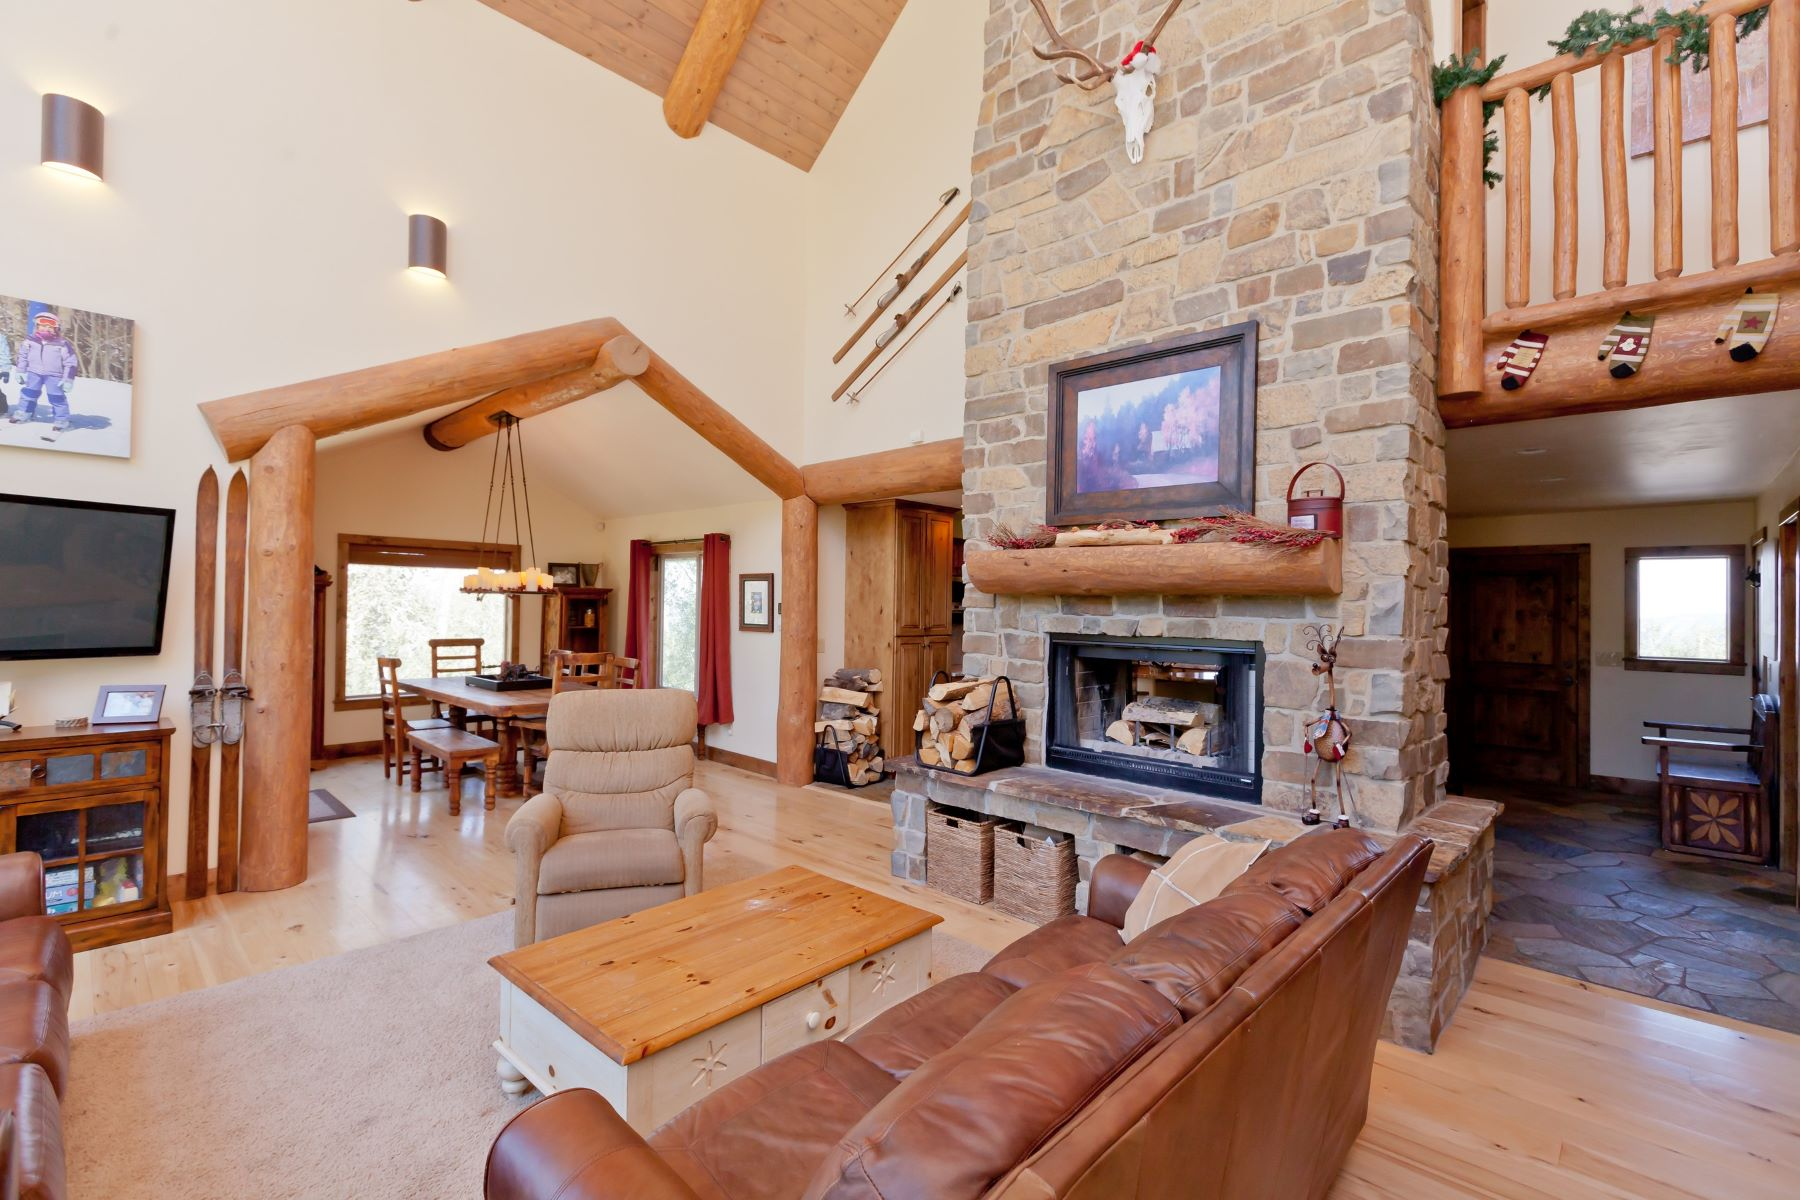 Casa Unifamiliar por un Venta en Custom Built Home at Powderhorn Ski Resort 4875 Spring Court Mesa, Colorado 81643 Estados Unidos